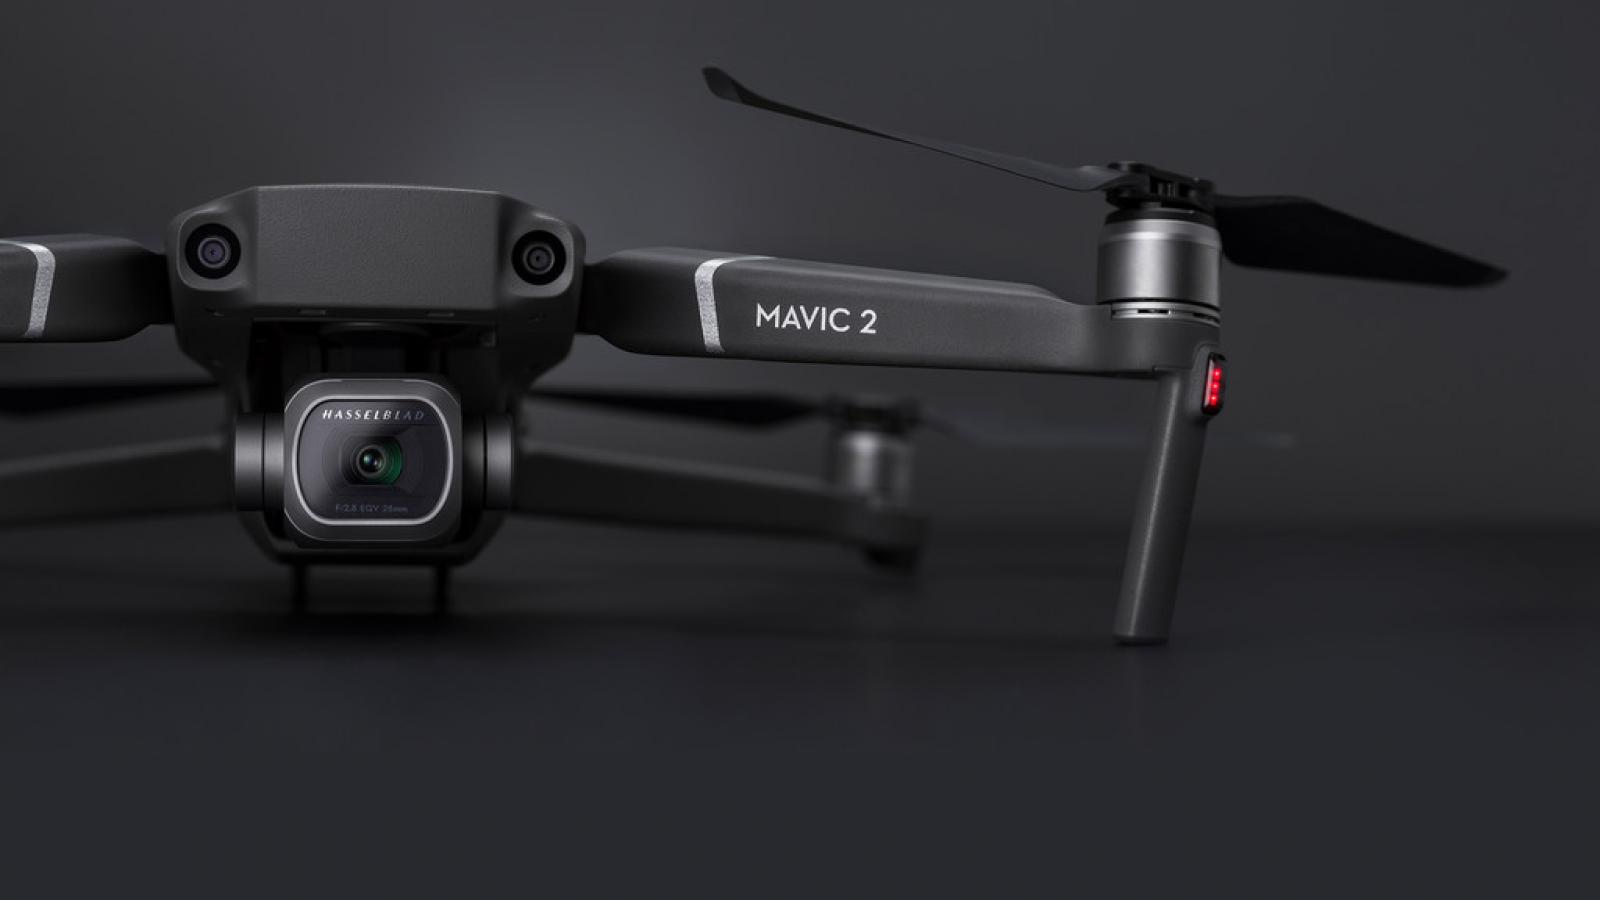 Cool Tech - DJI Mavic 2 Pro, Tesla Qi-Based Wireless Charger and more